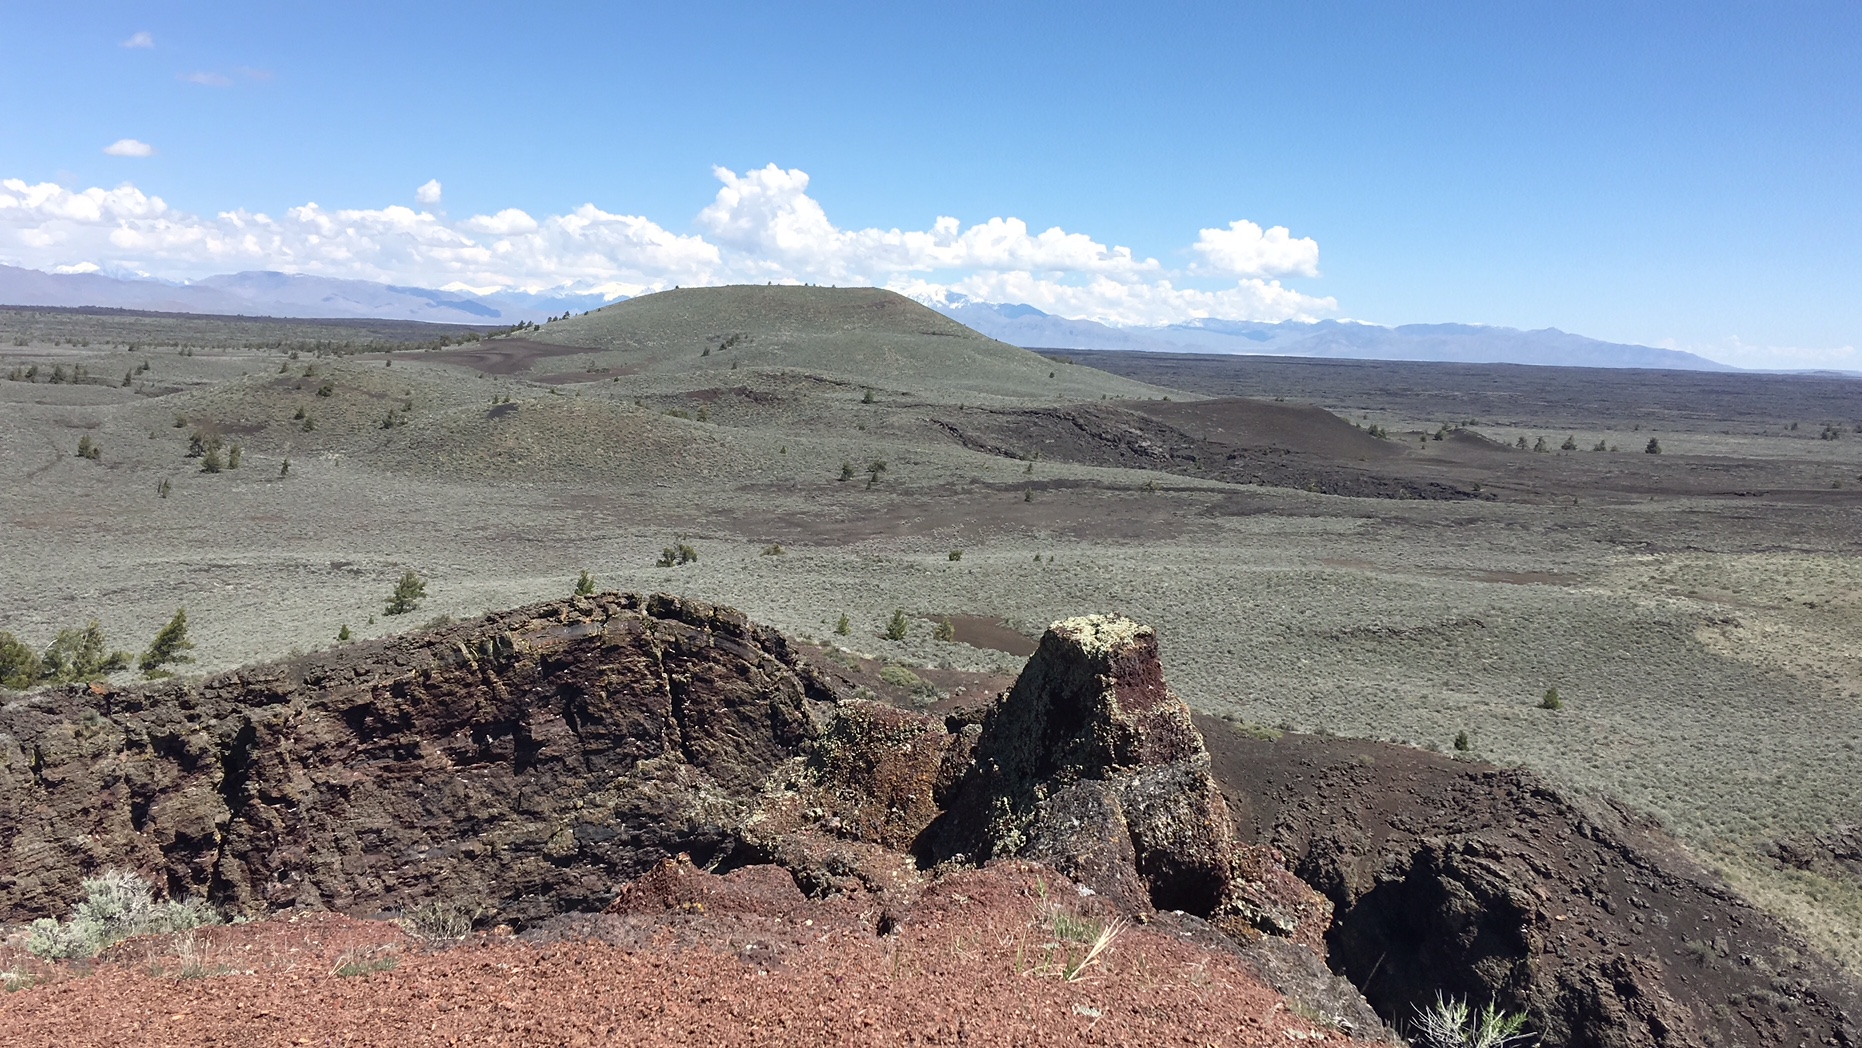 View from Echo Crater in the wilderness area.